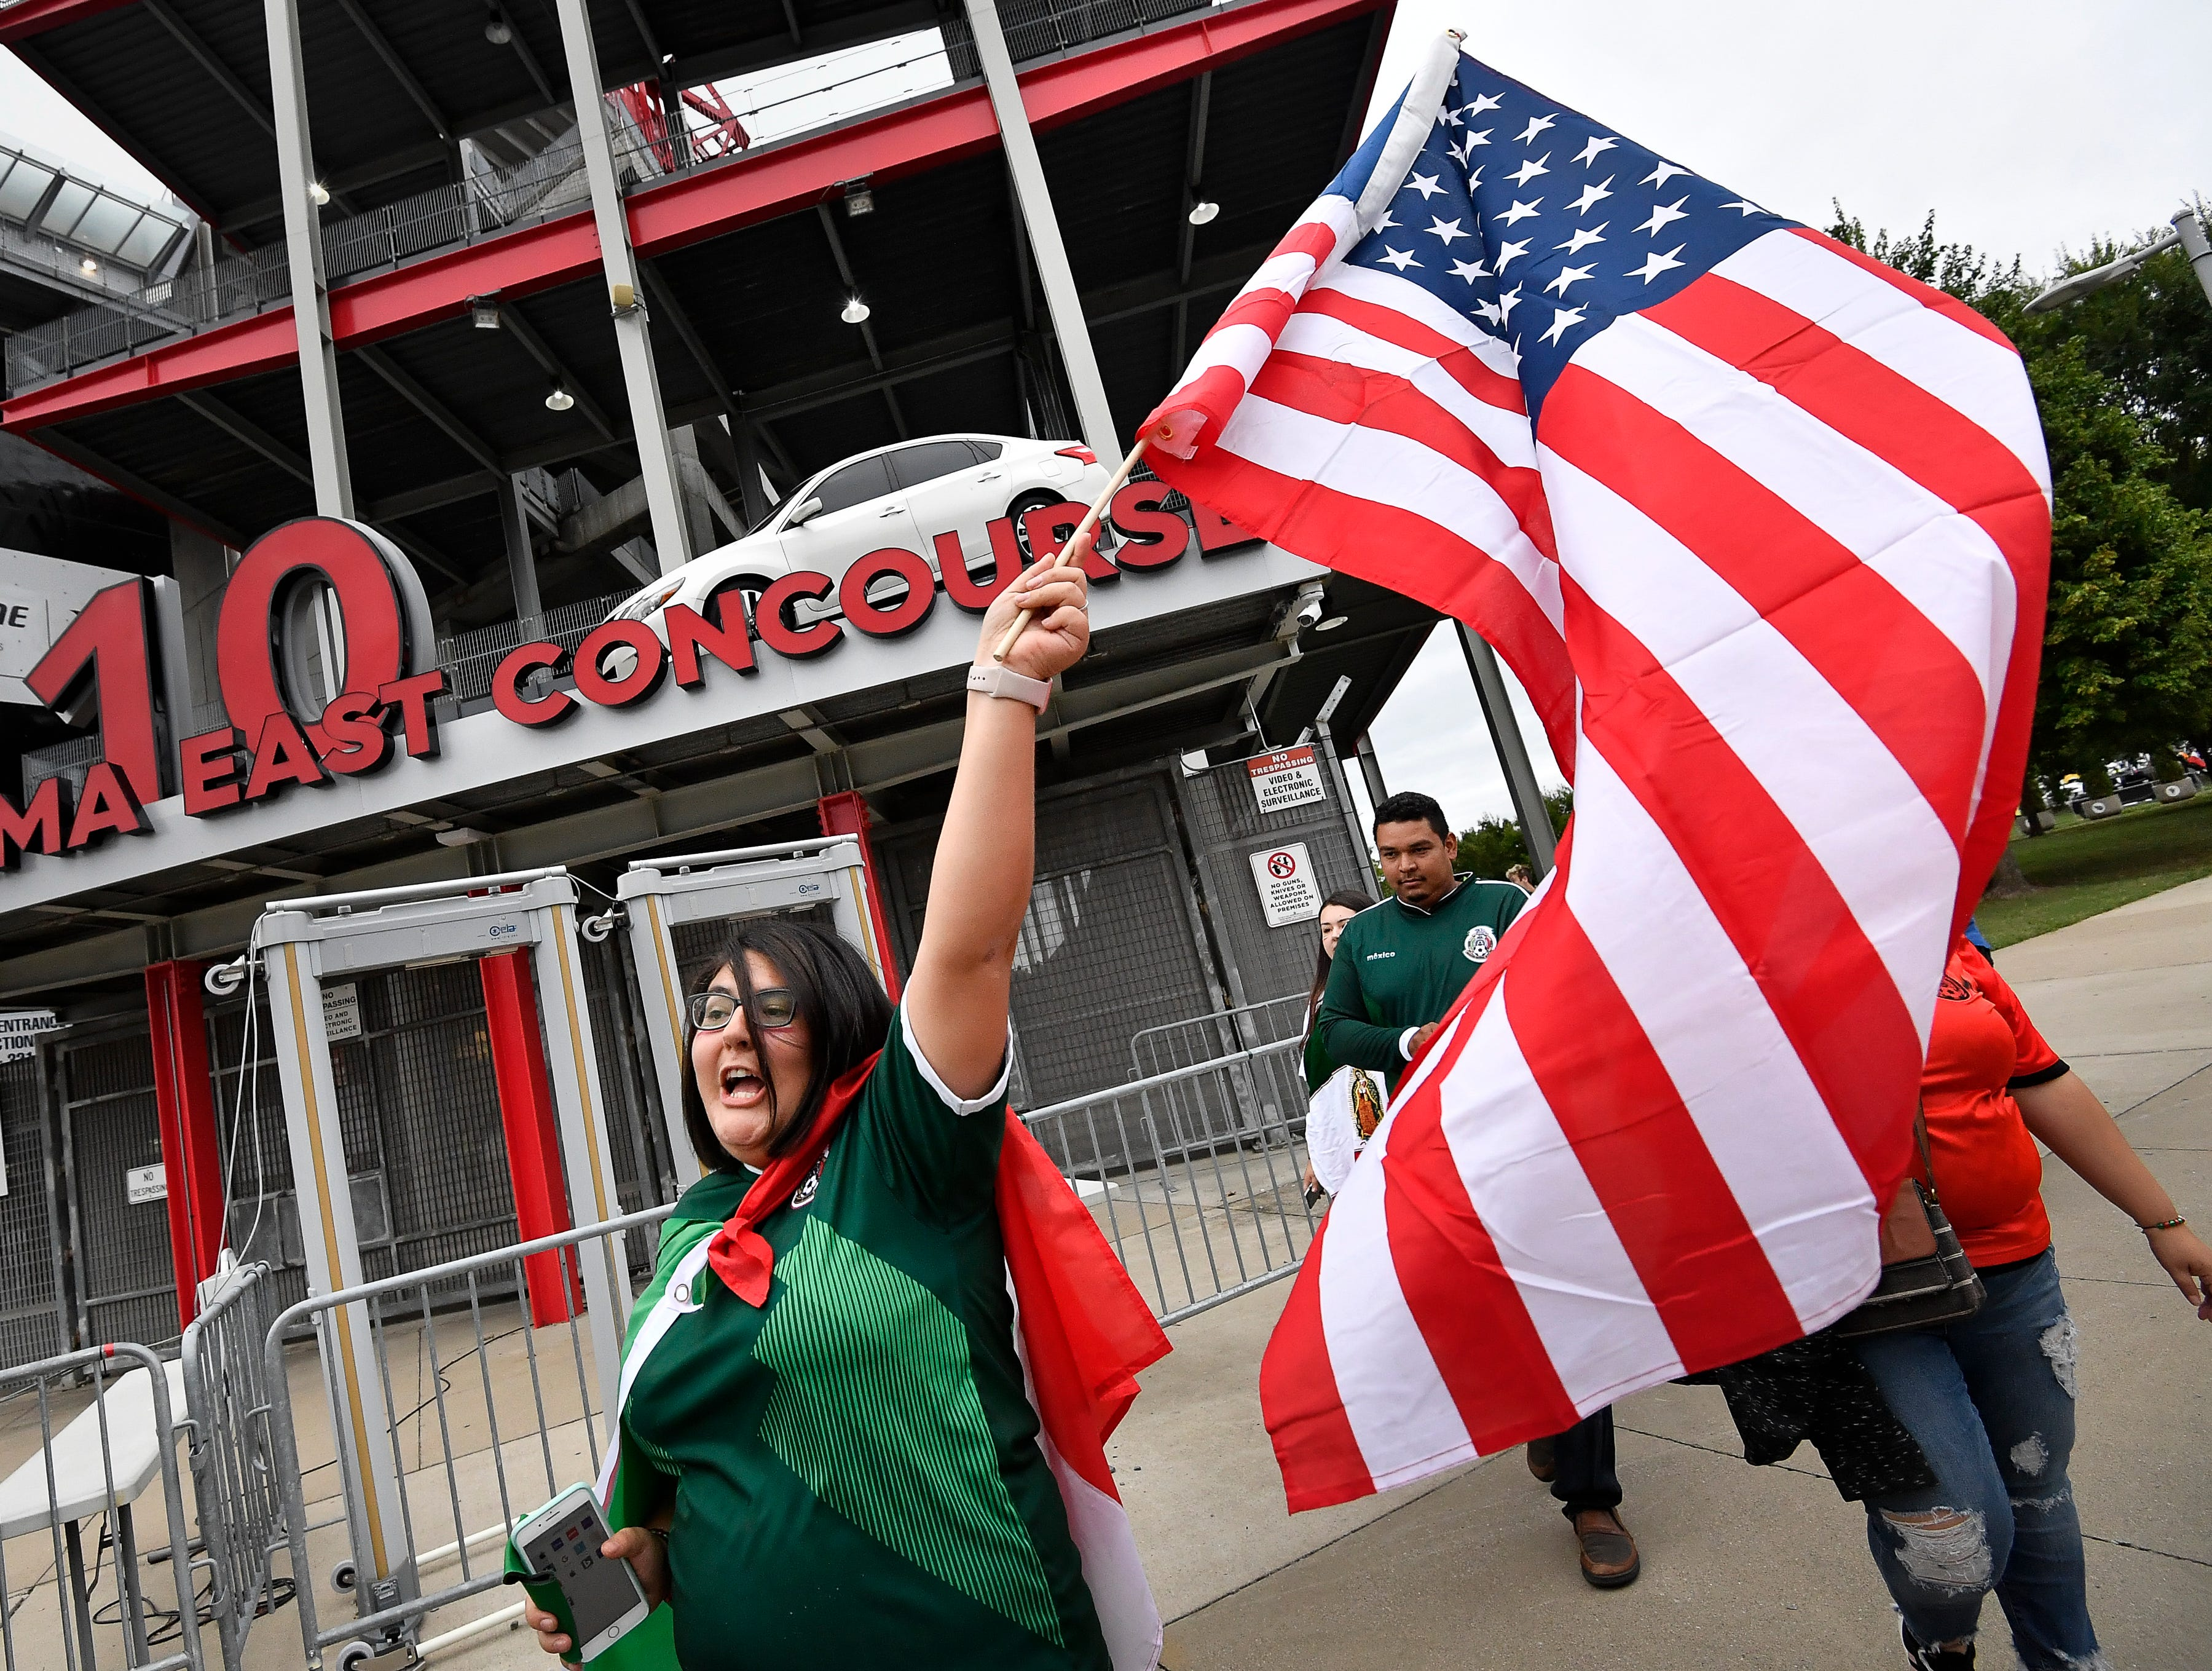 Mexican soccer fan Connie Mathies waves the American flag before the USA vs. Mexico soccer match at Nissan Stadium Tuesday, Sept. 11, 2018, in Nashville, Tenn.